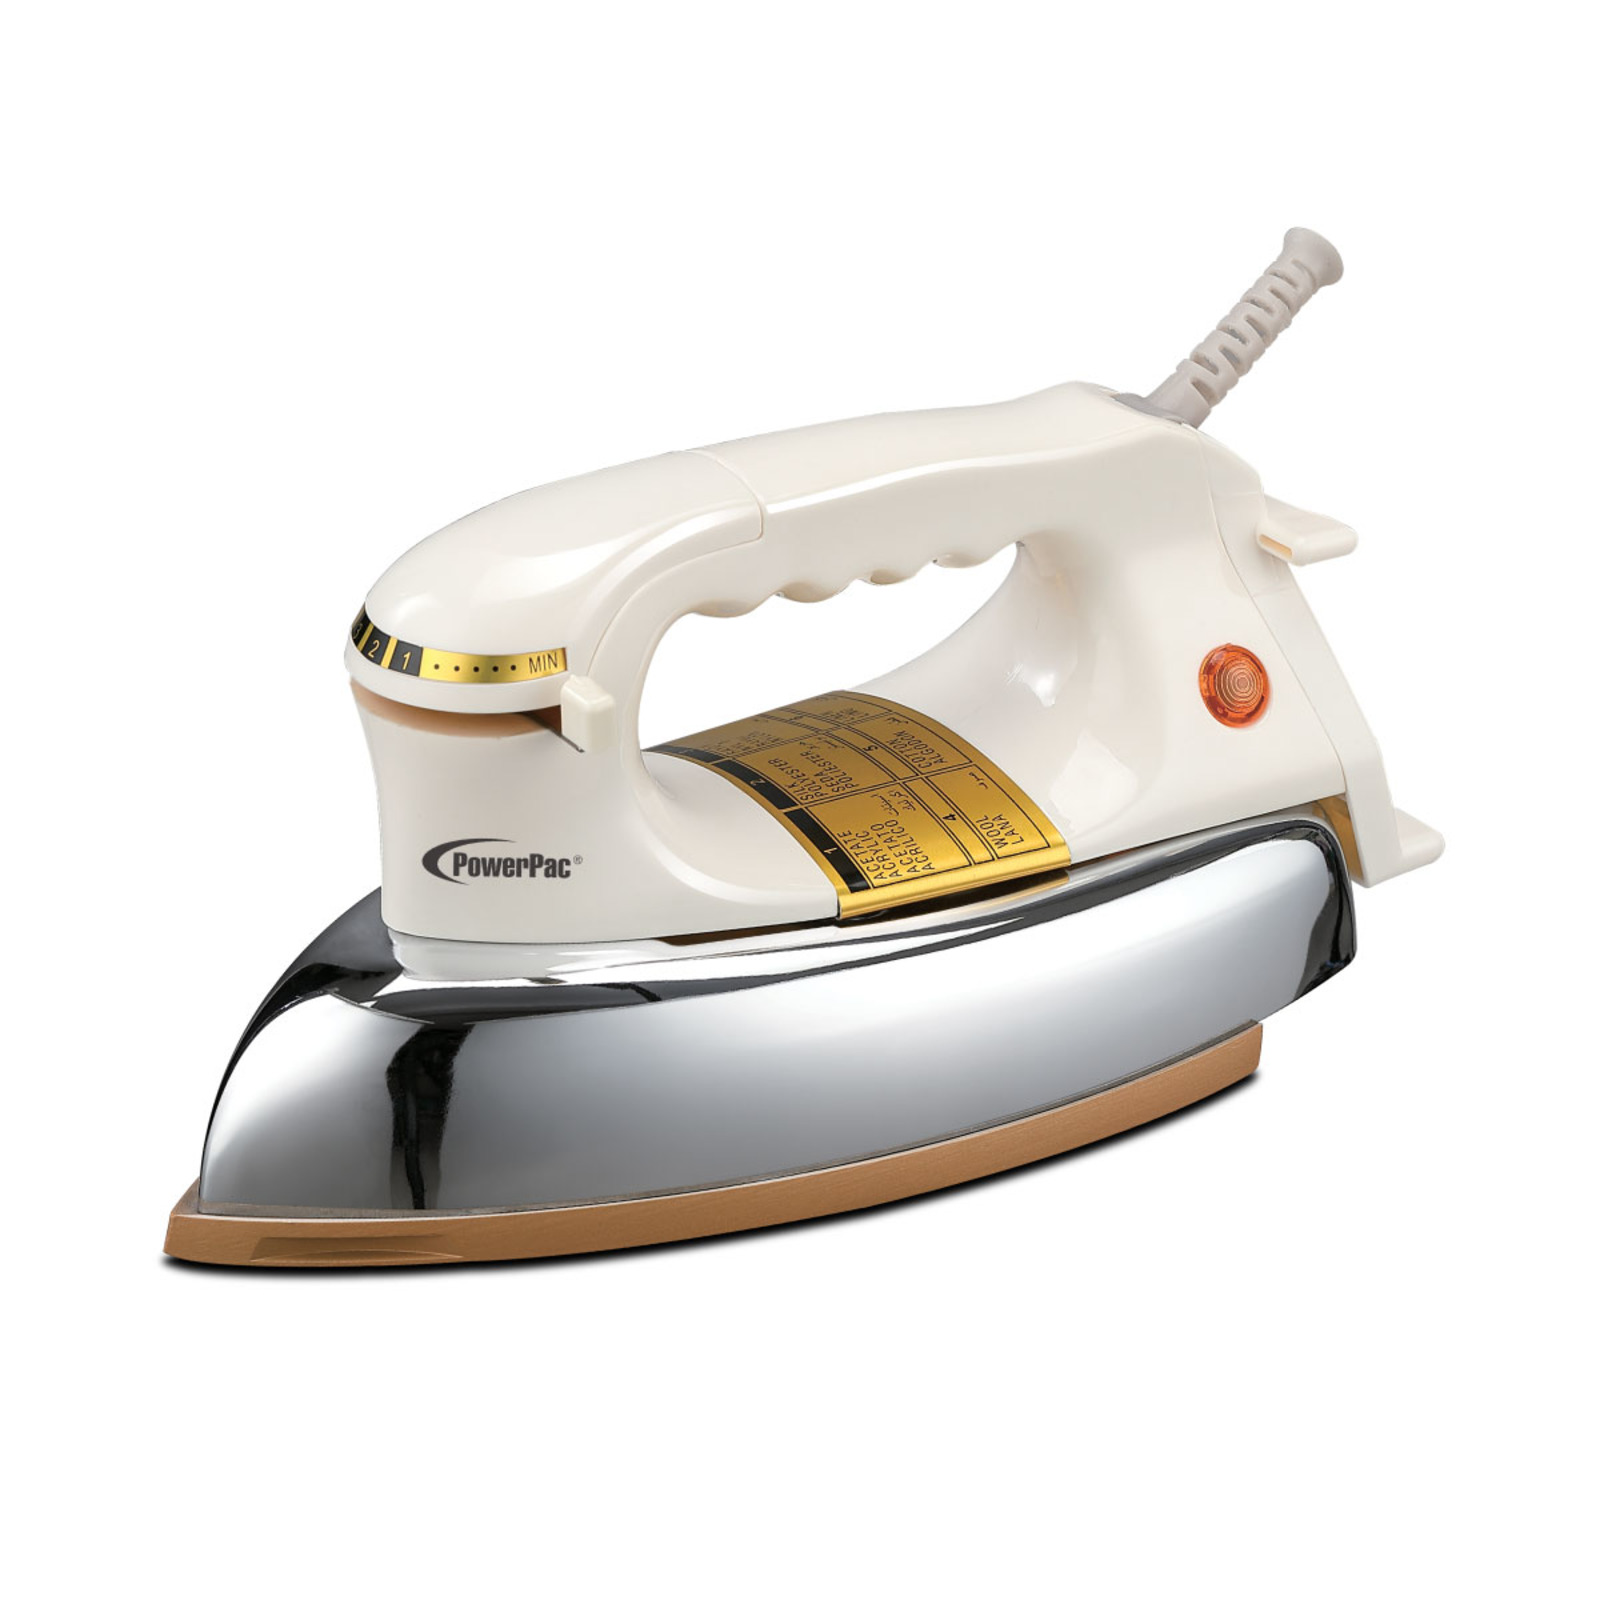 PowerPac 1.5KG Heavy Dry Iron 1200W PPIN1127